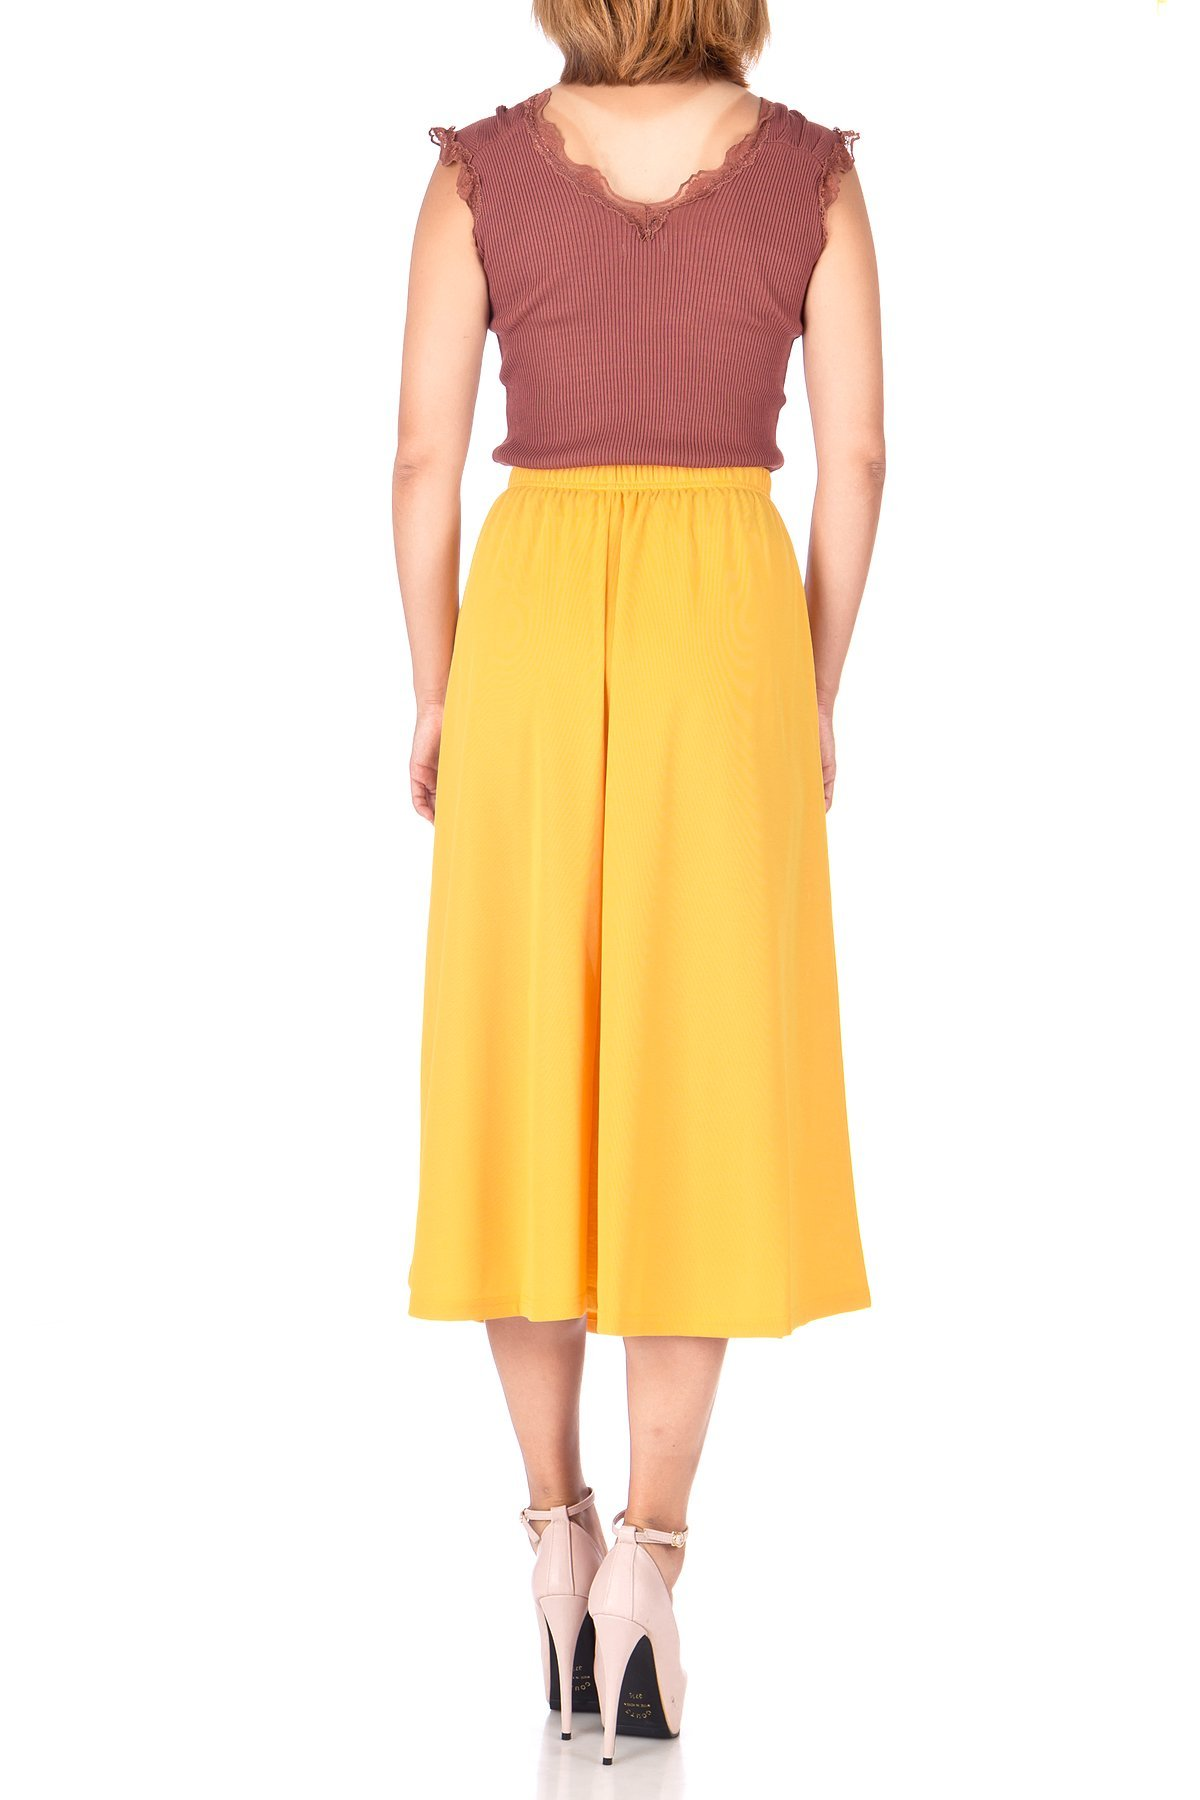 Brilliant Elastic Waist Full Flared Long Skirt Yellow 03